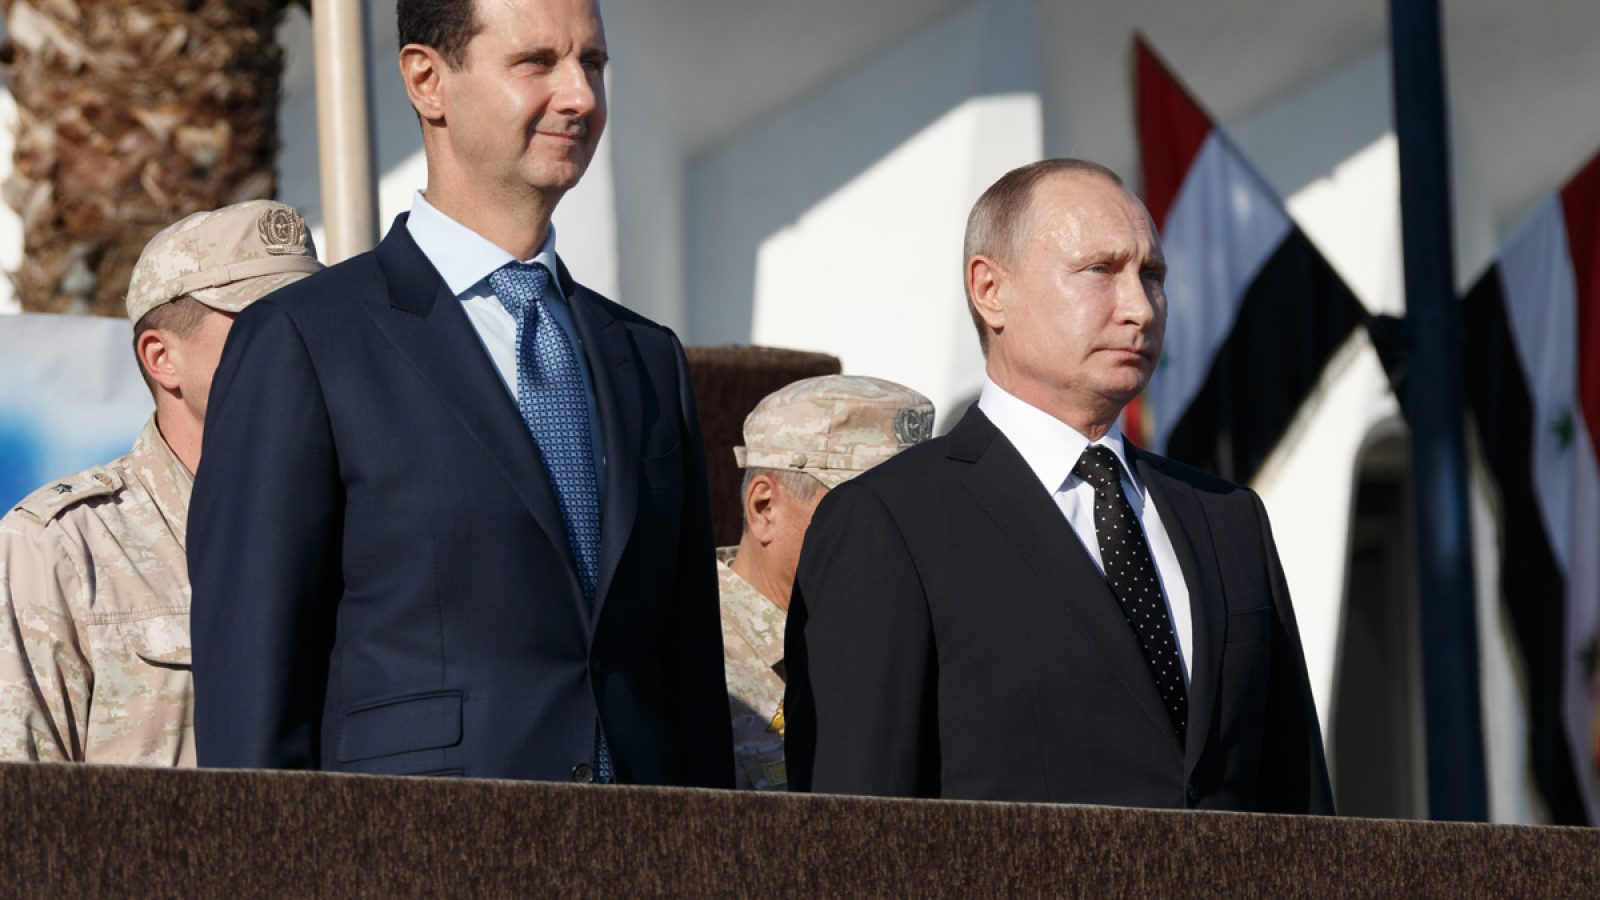 Putin and Syrian president stands